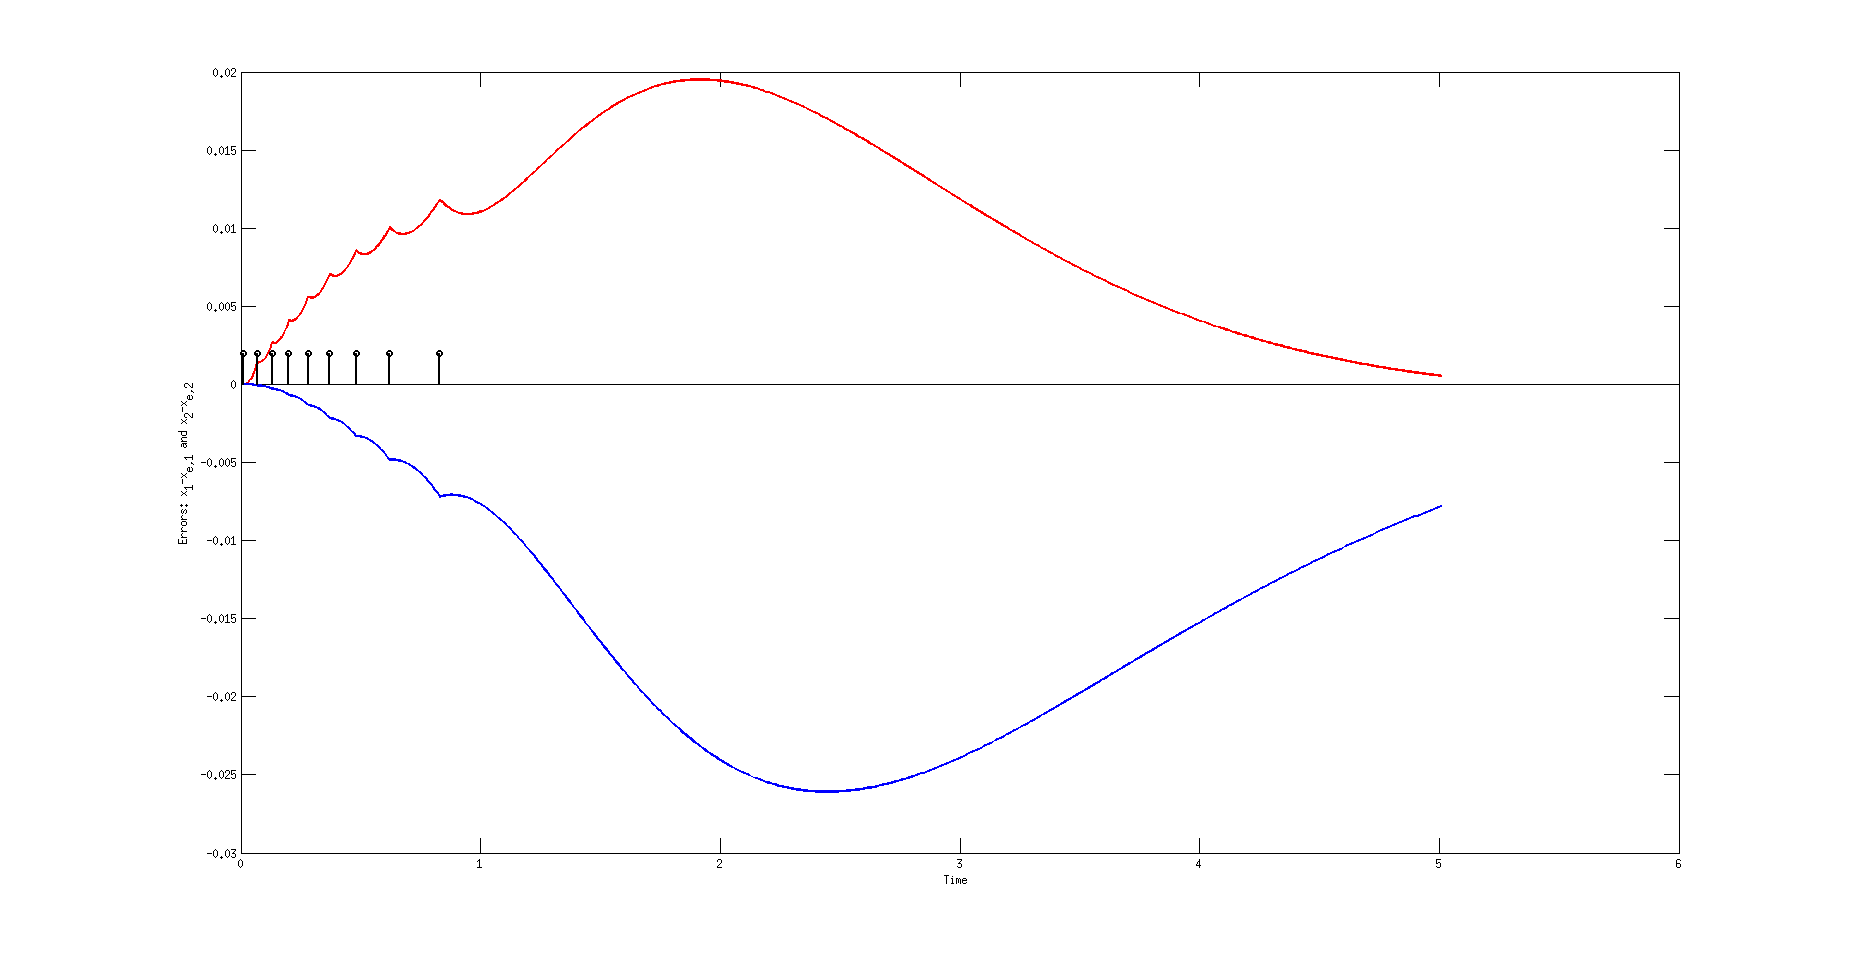 The red curve corresponds to the first component of the error